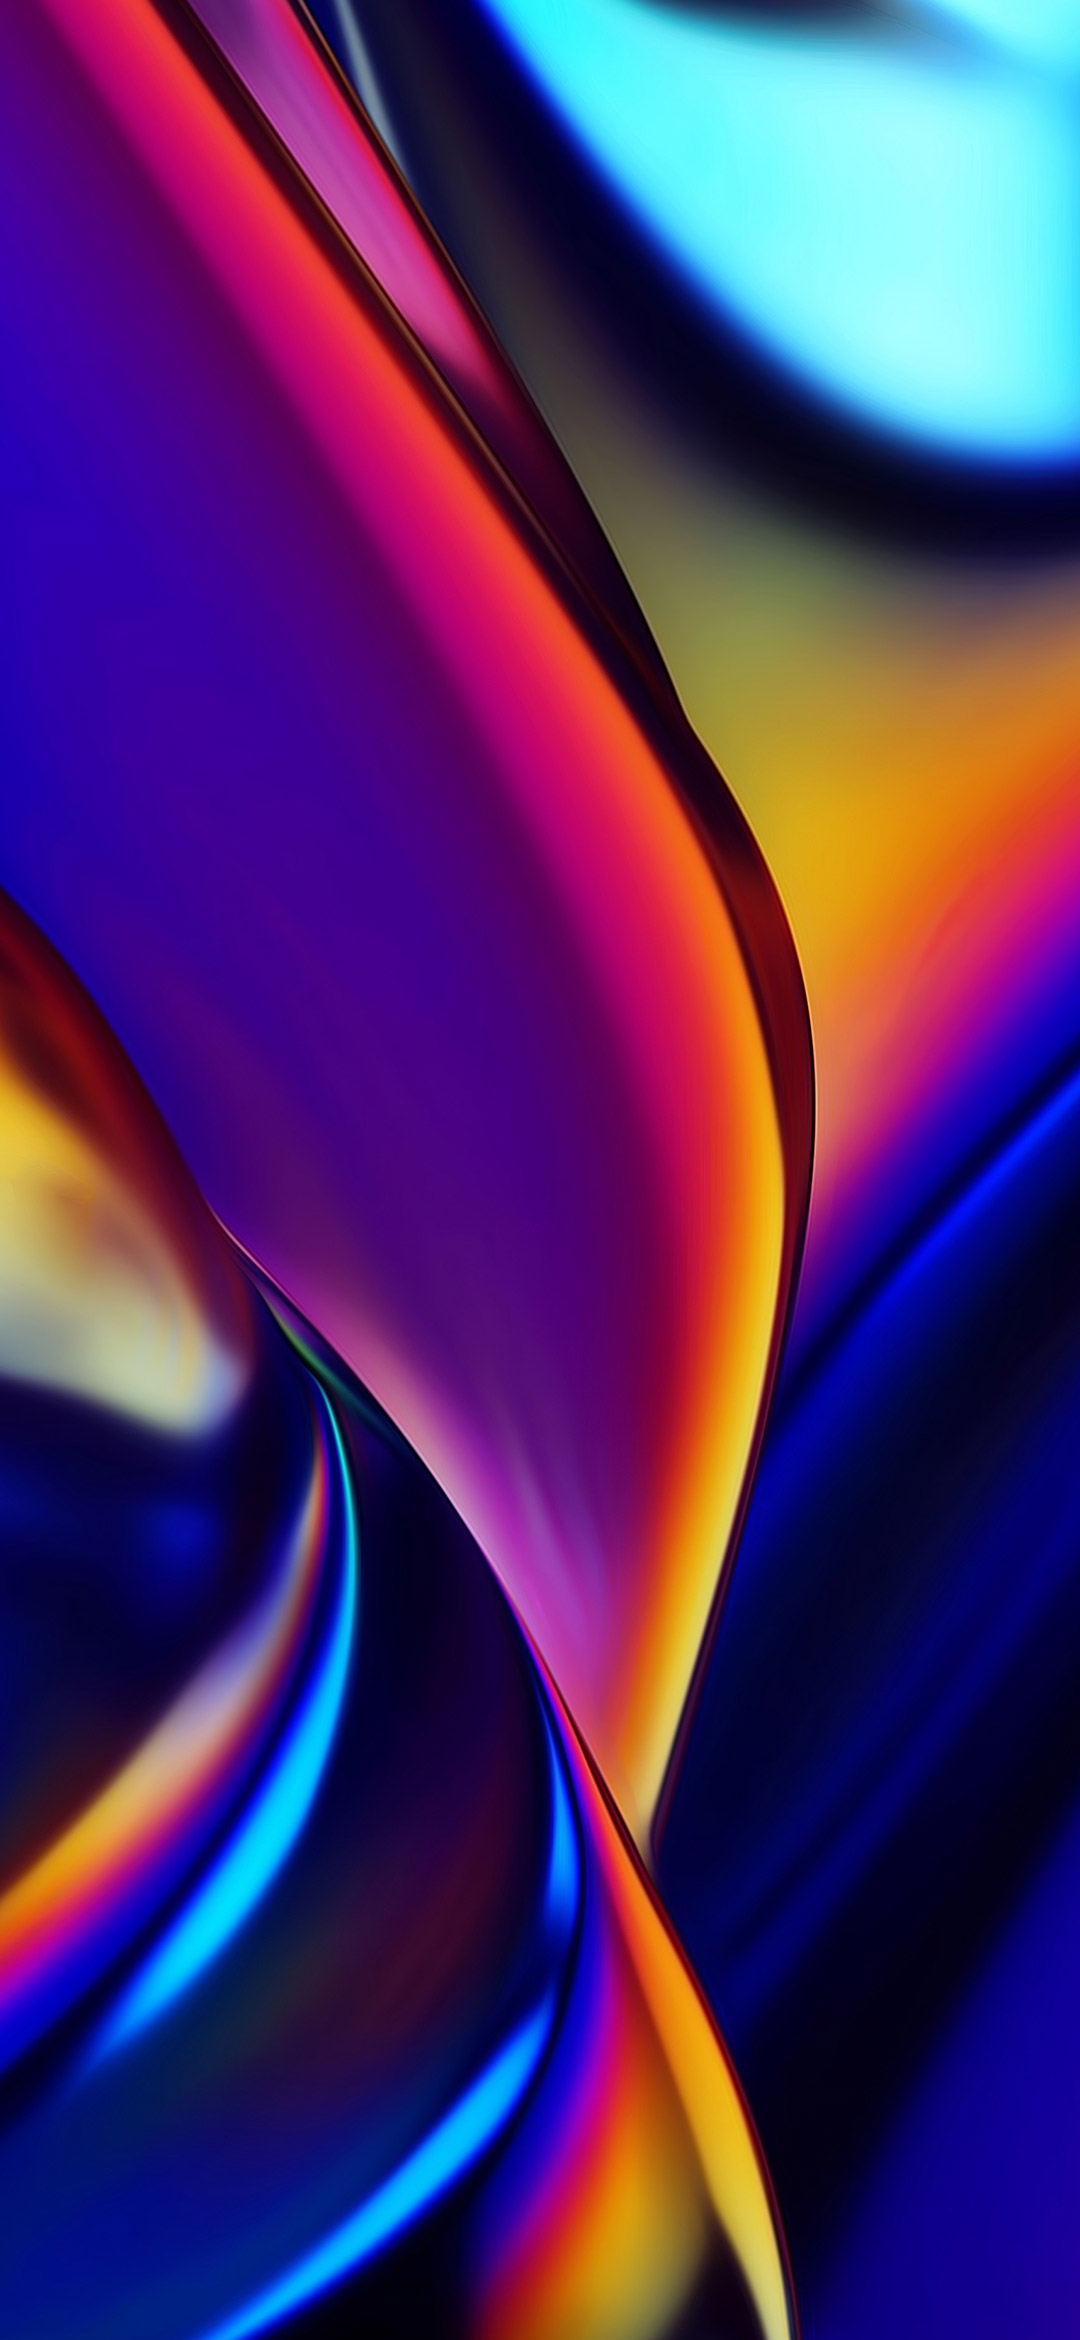 Apple pro display xdr abstract wallpaper